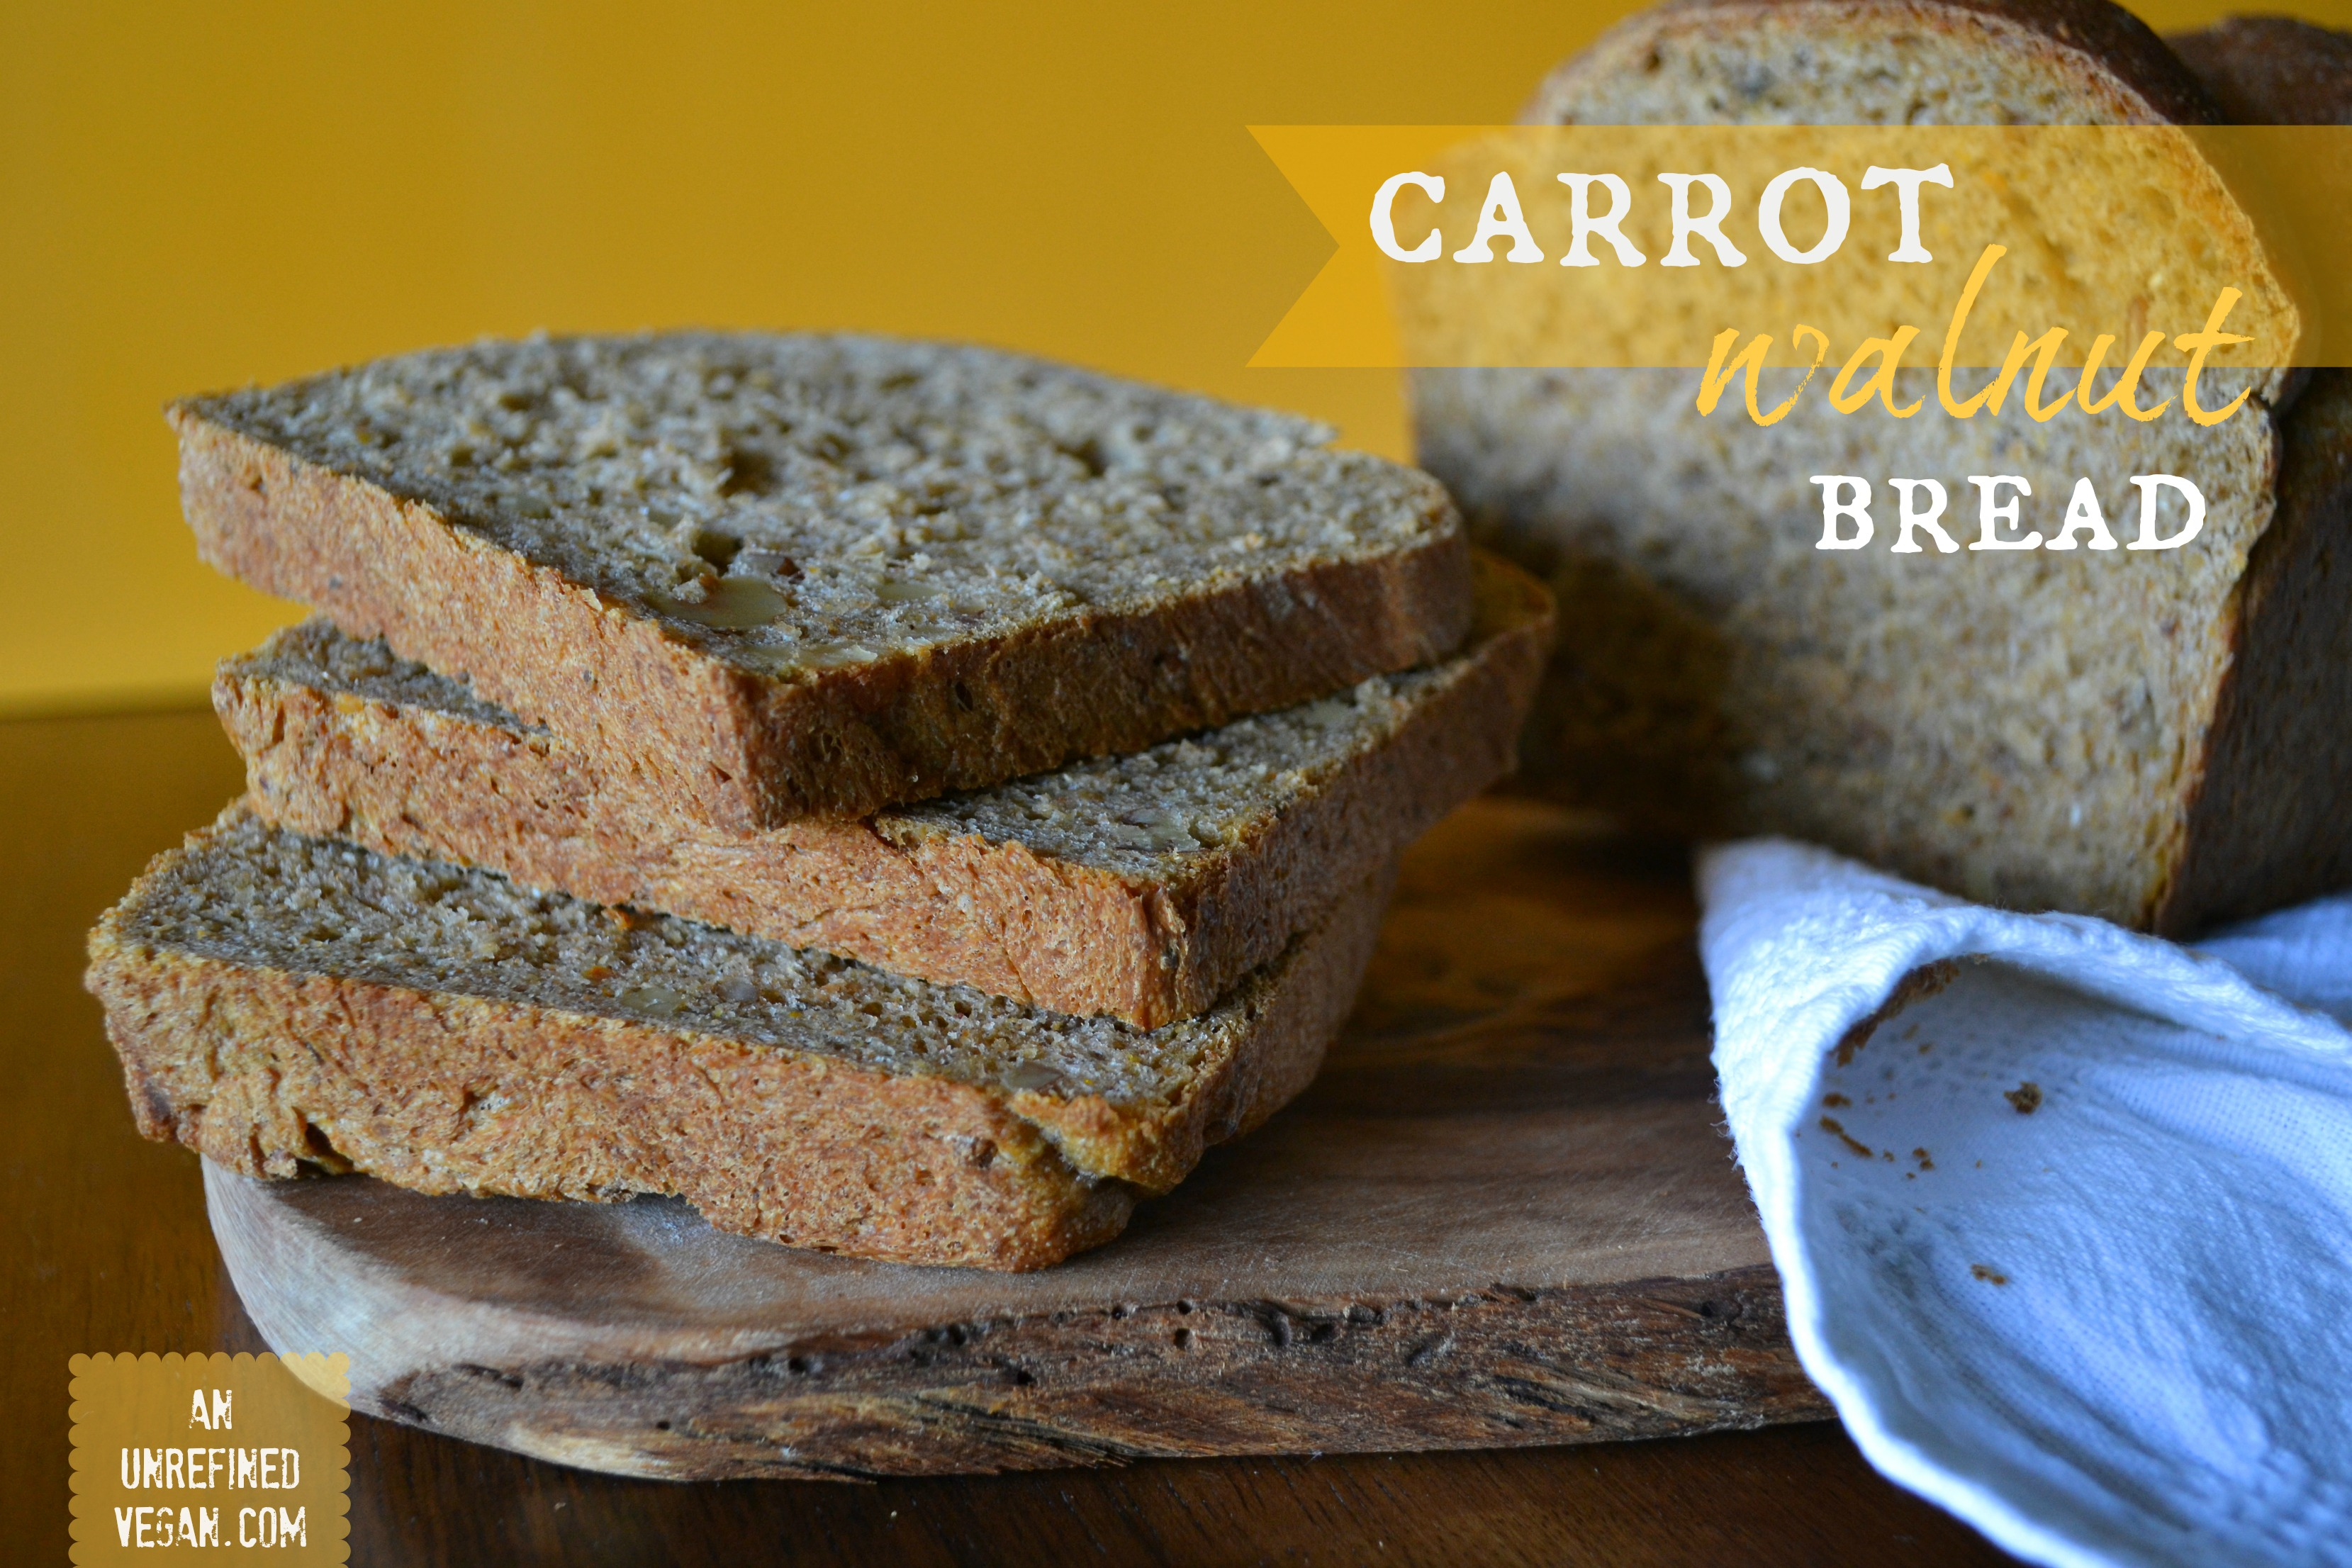 Carrot Walnut Bread